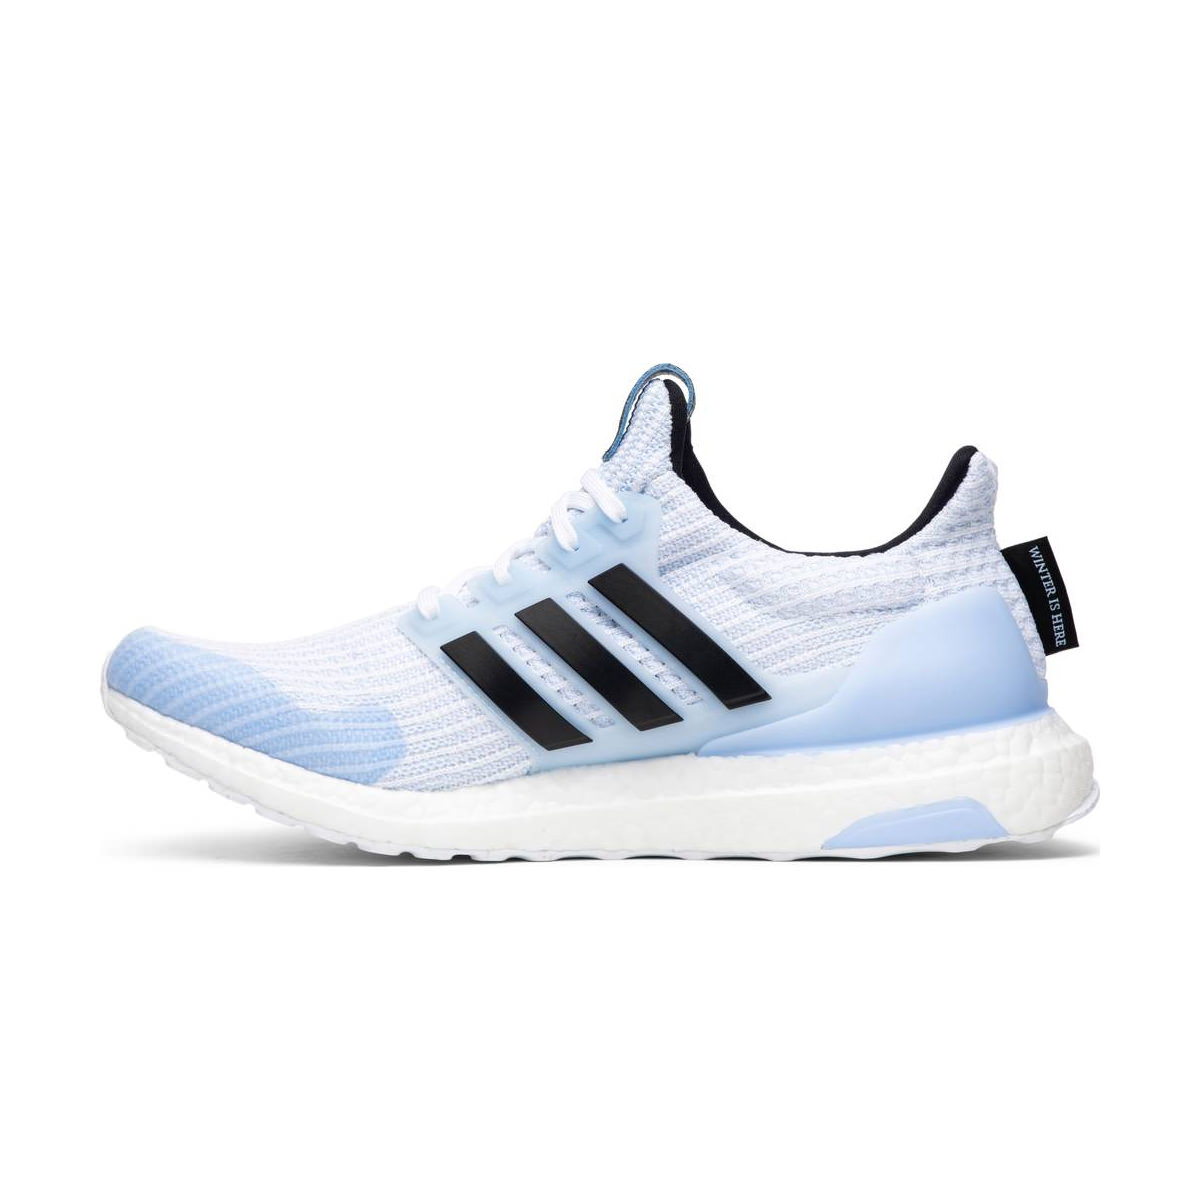 low priced 720ab 5b2f5 adidas Game Of Thrones UltraBoost 4.0 White Walkers